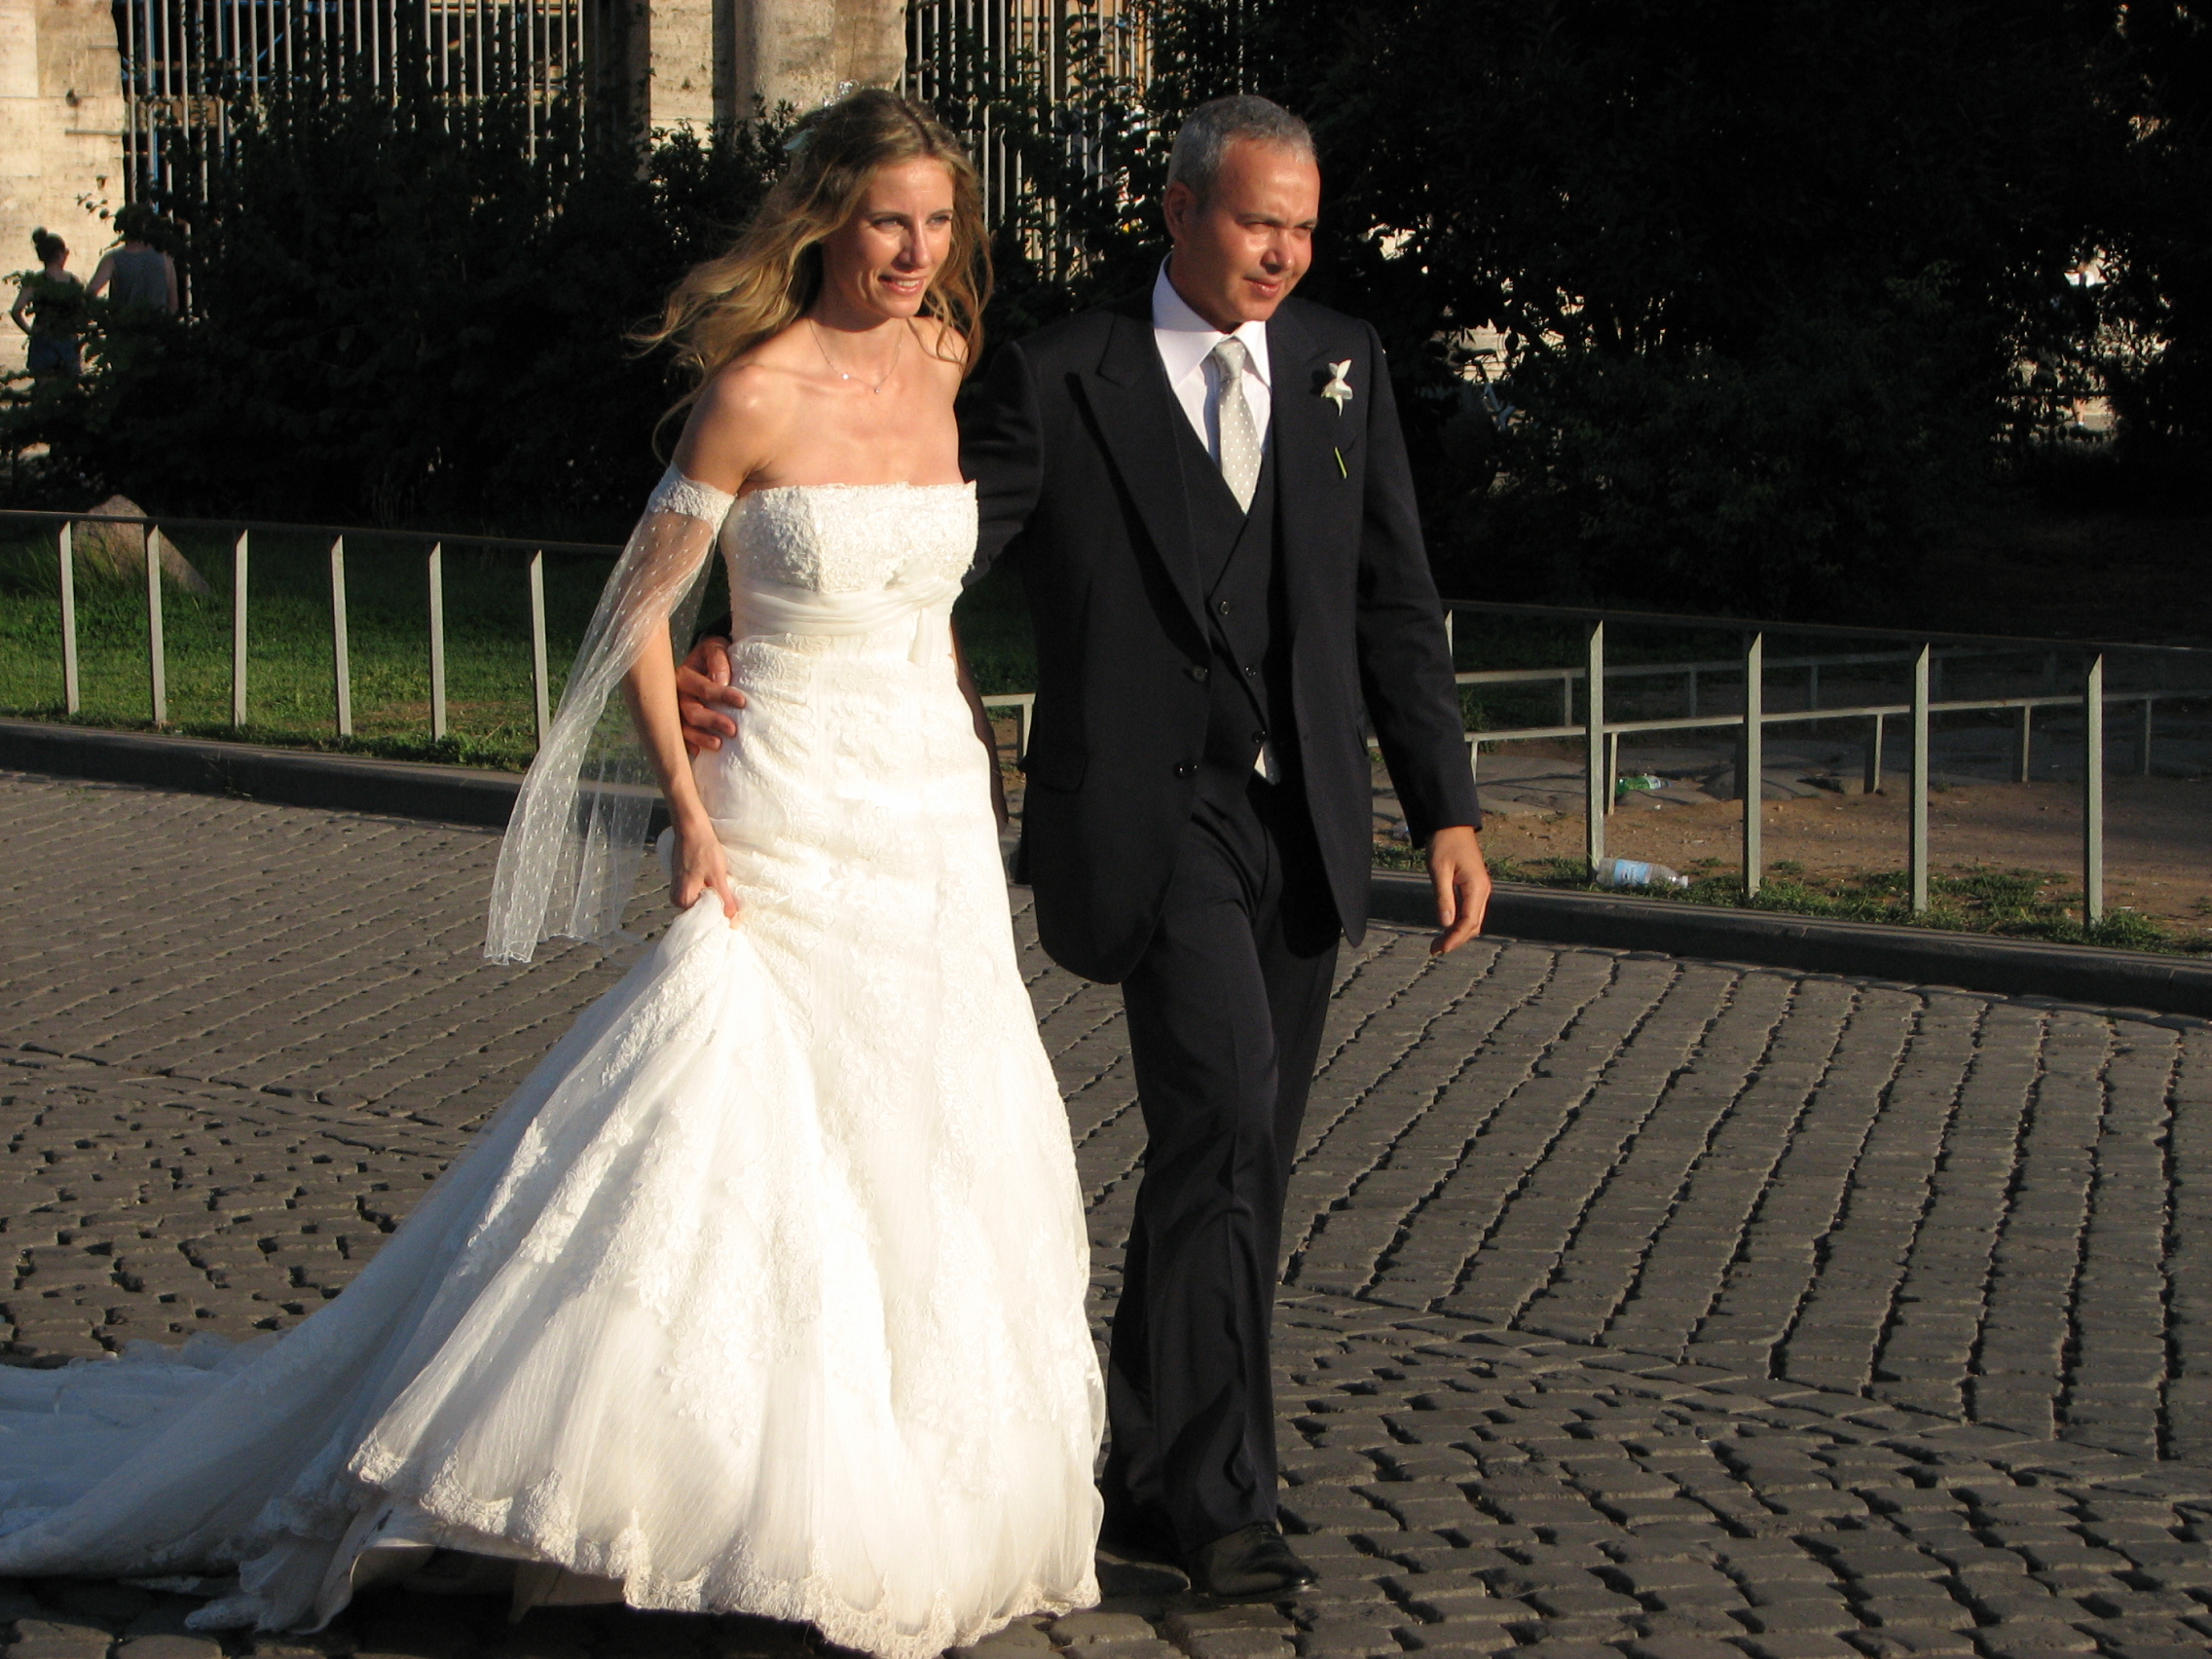 A bride and her bridegroom in Rome, Italy, European Union, August 2011, picture 37.